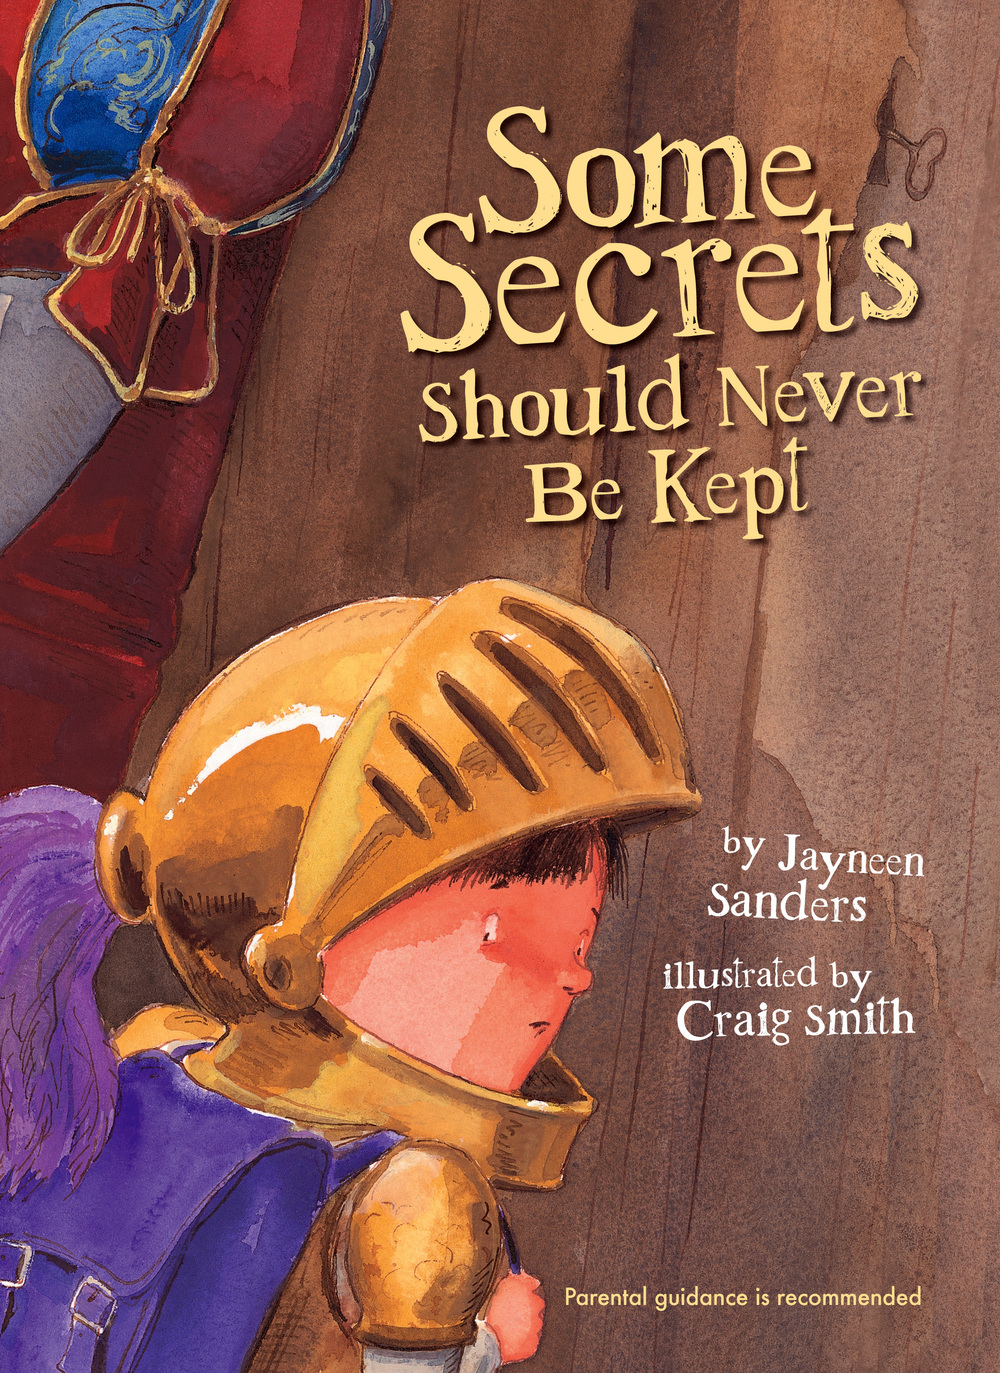 Illustrated Children S Book Covers ~ Top must have children s books on personal safety and emotional